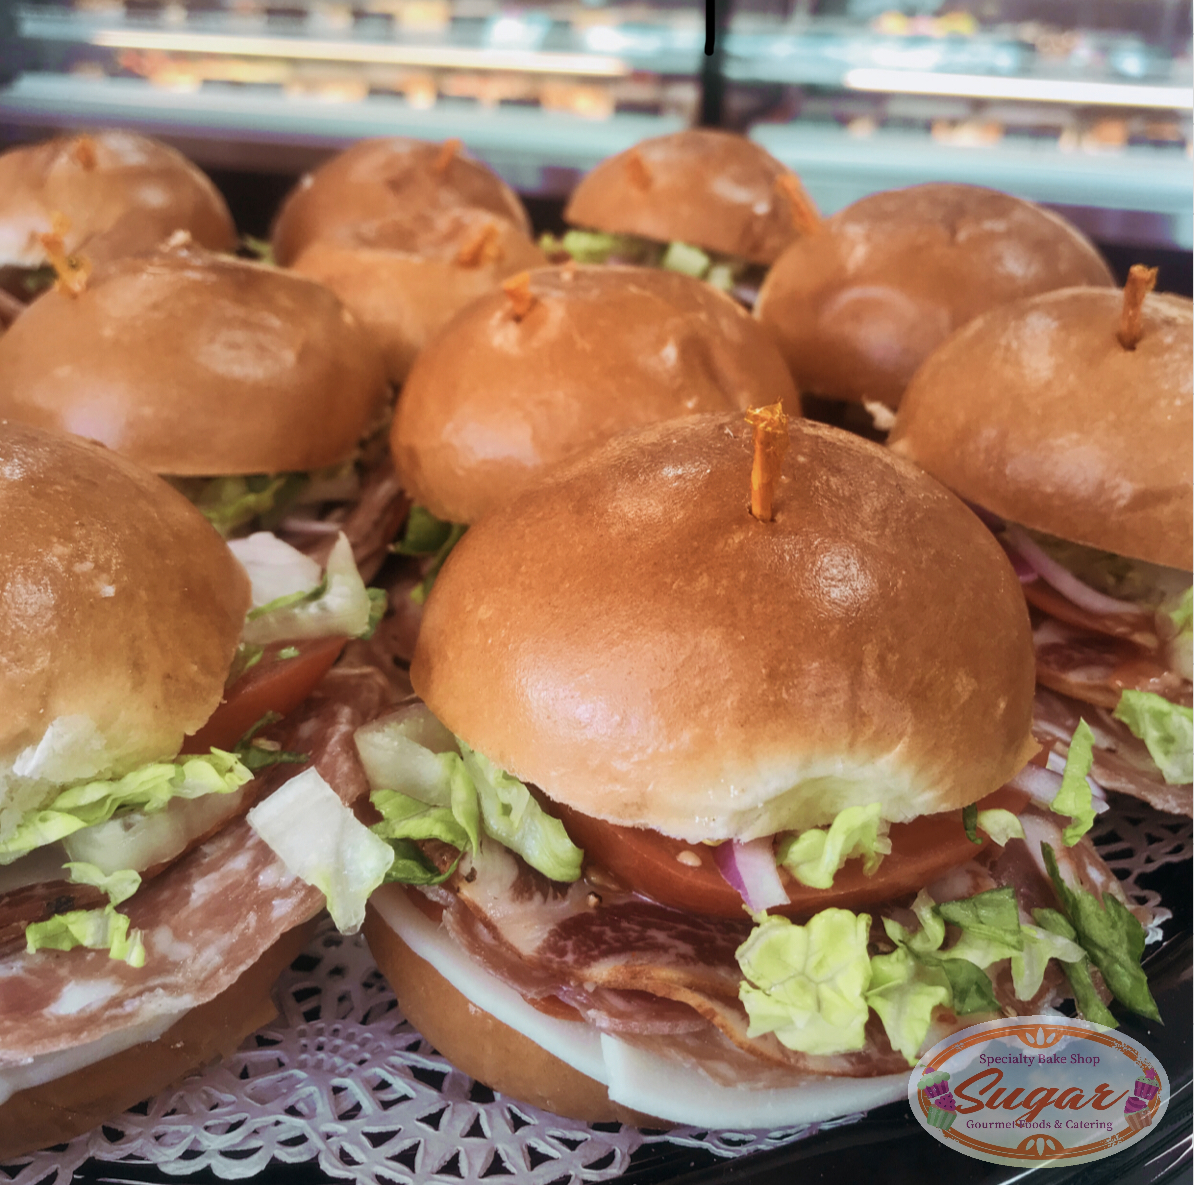 Catering from Sugar Bake Shop & Gourmet Foods